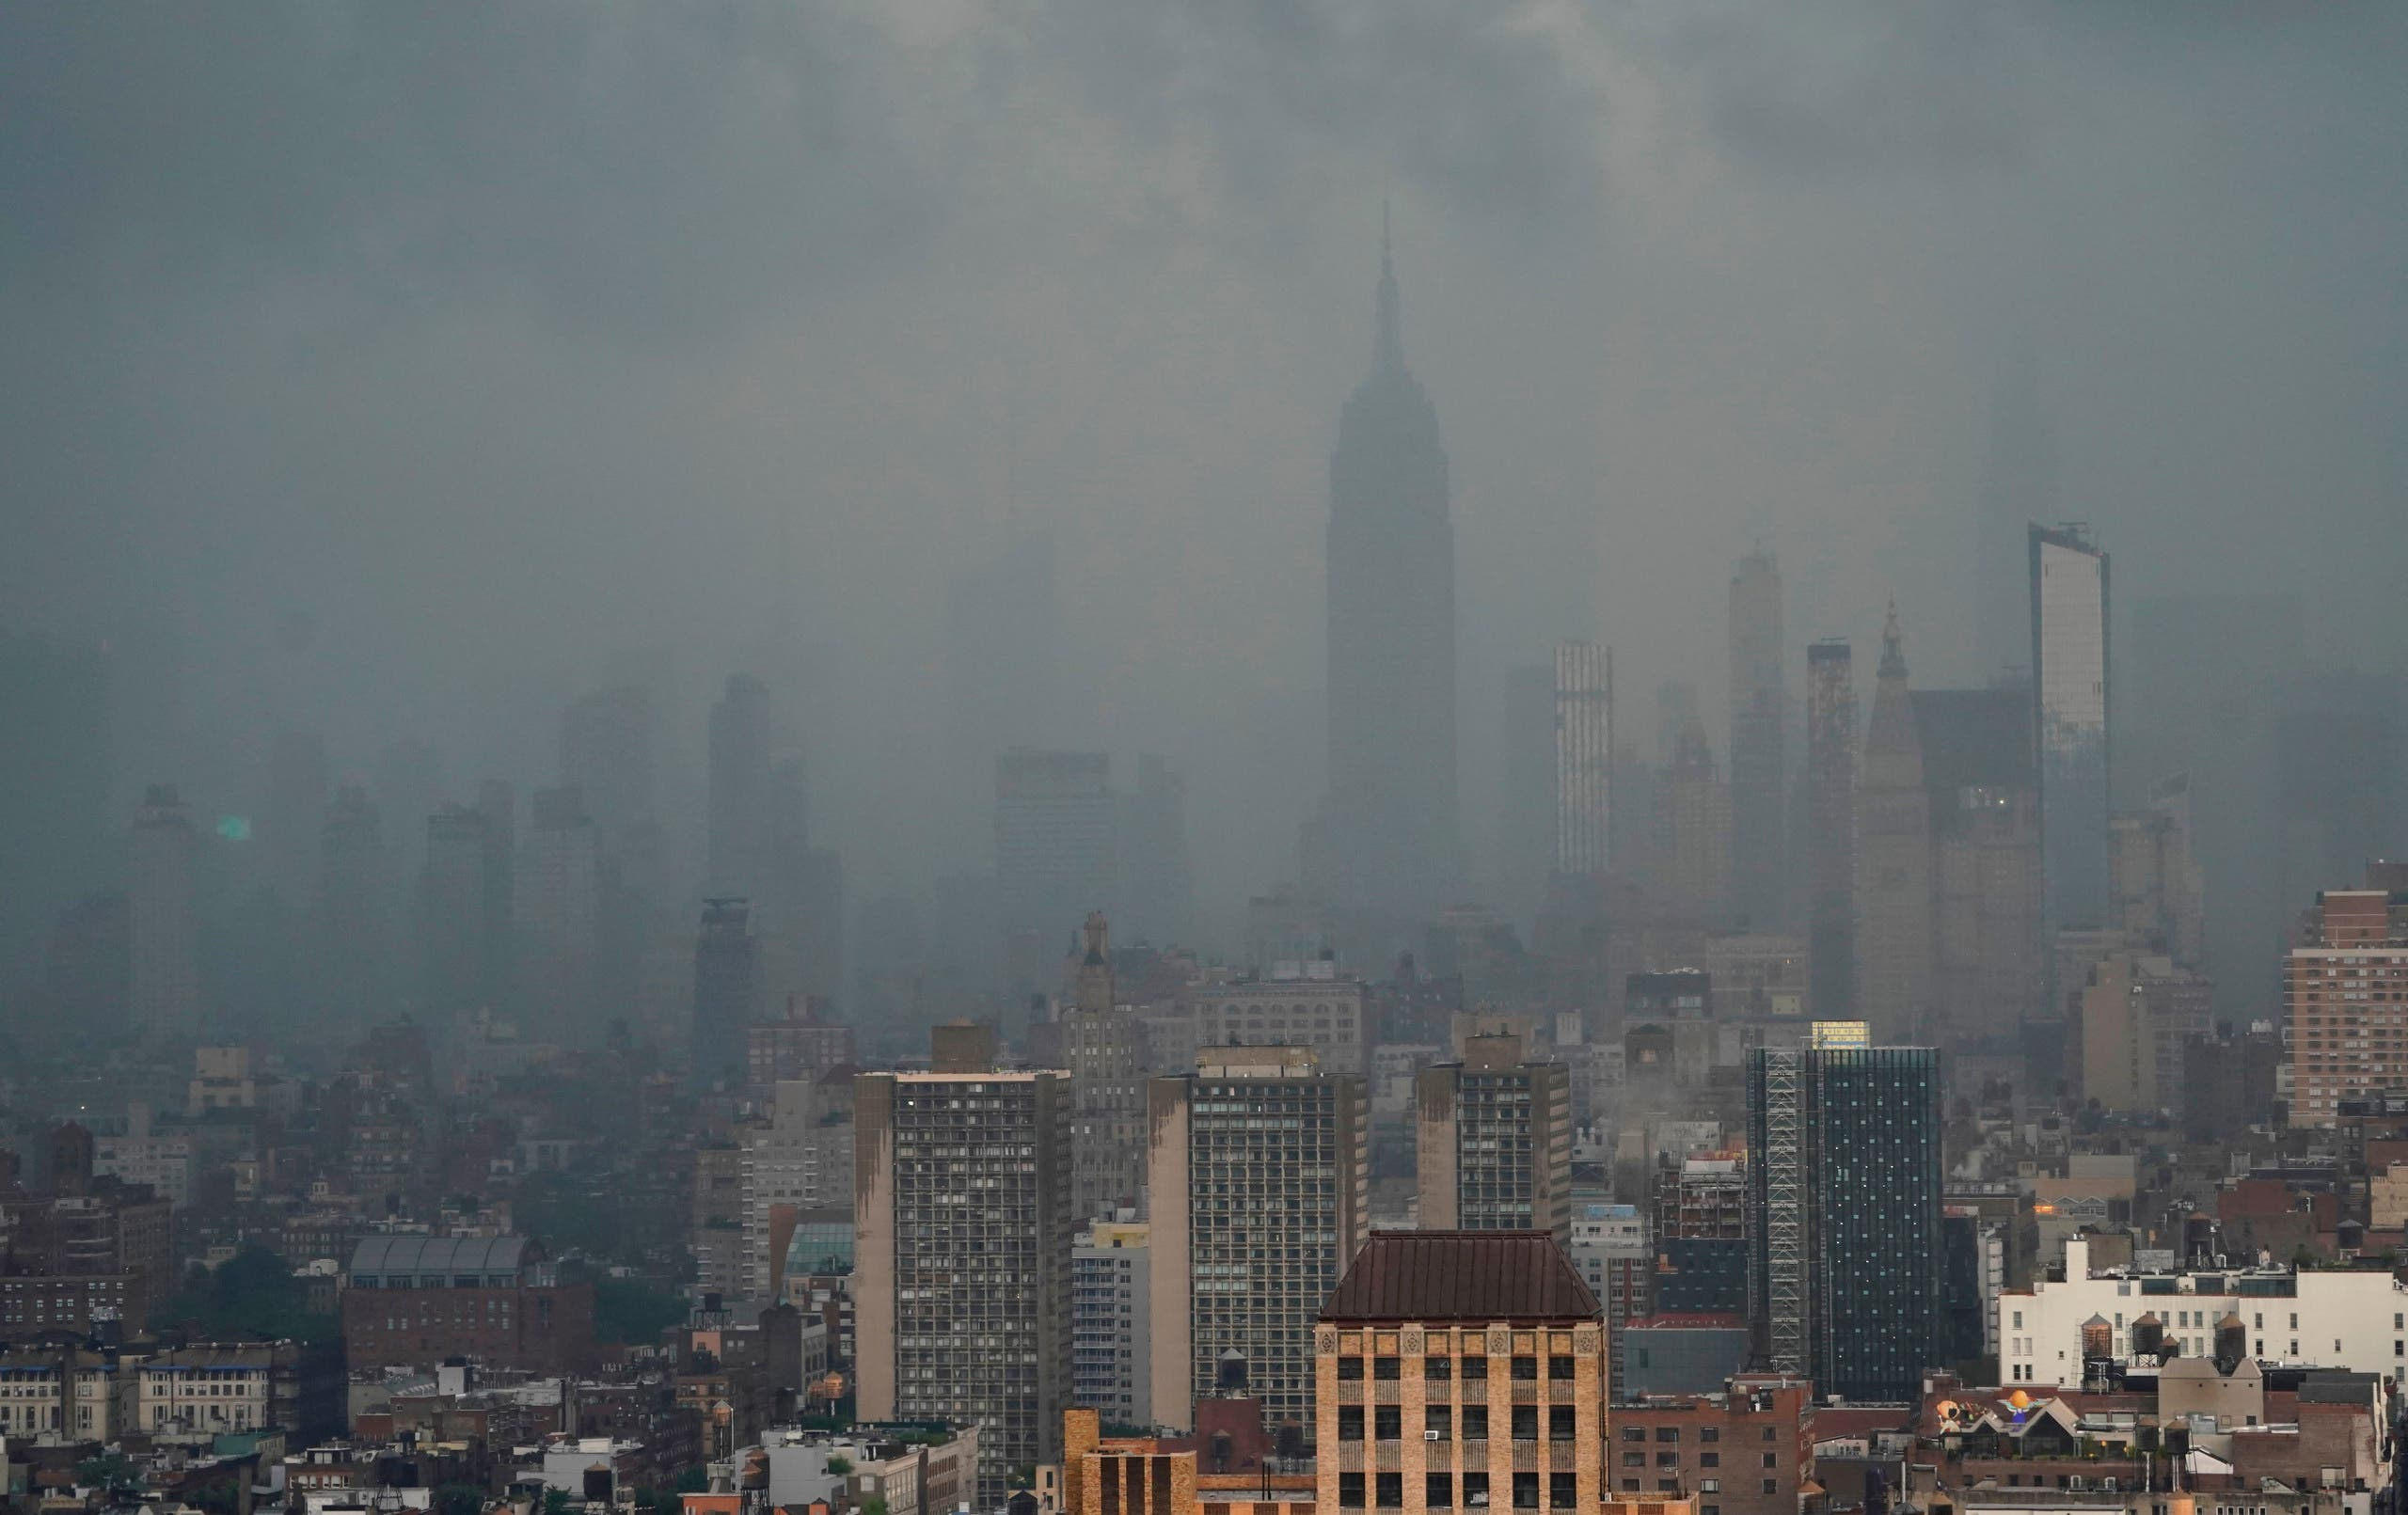 Rain covers the Empire State Building in New York July 8, 2012 as Tropical Storm Elsa moves up the Northeast with heavy rain and flash flood warnings. (File photo: AFP)